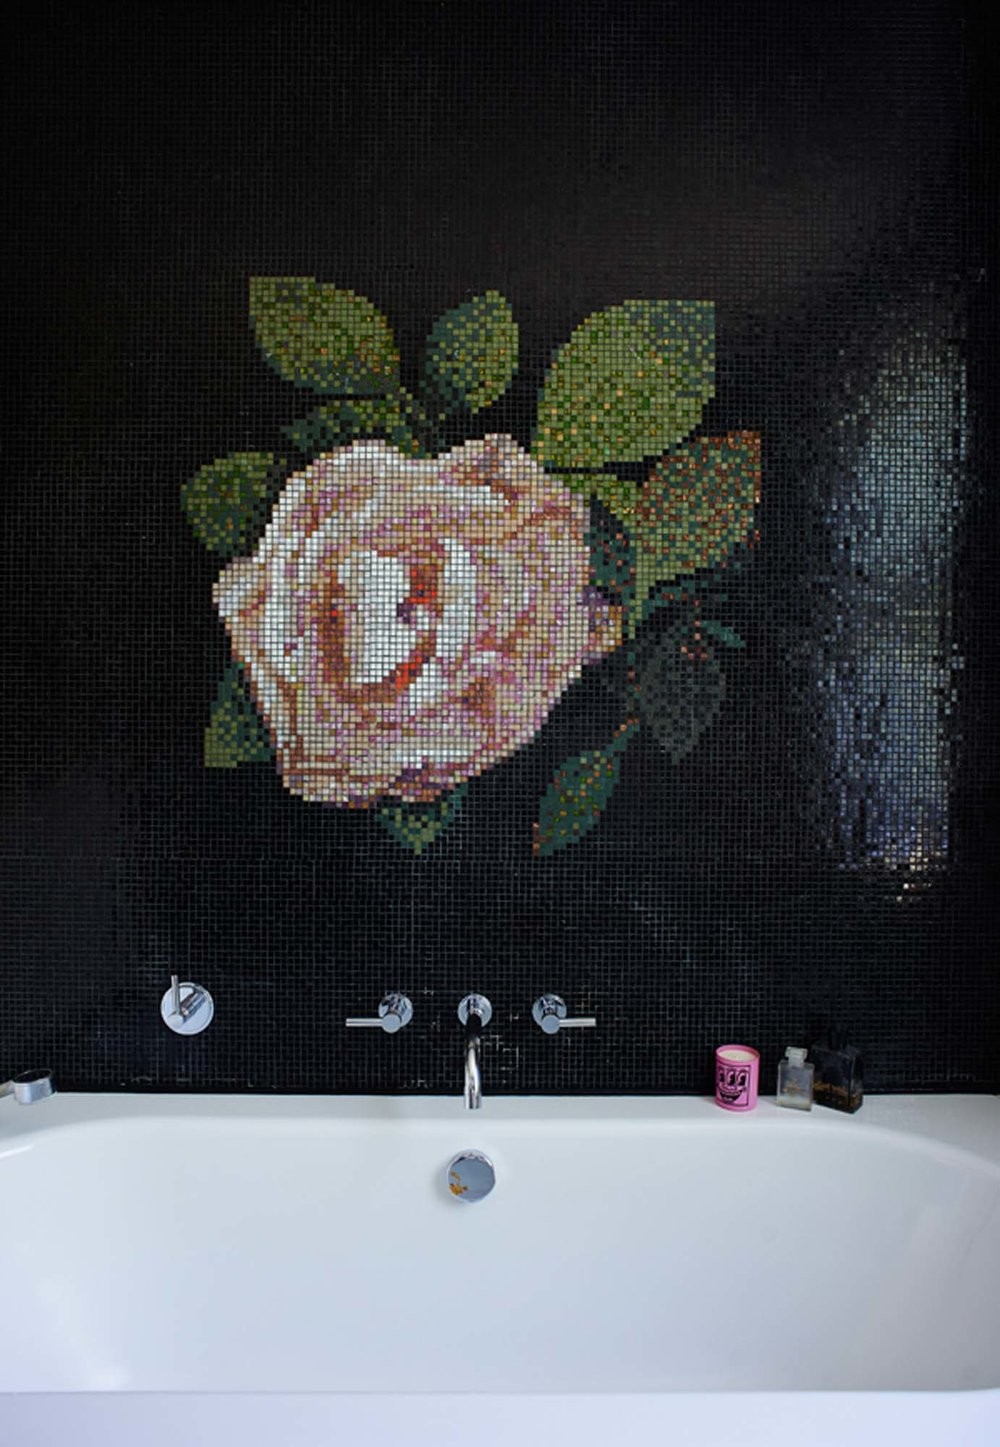 The flower mosaic in Zoe's bathroom